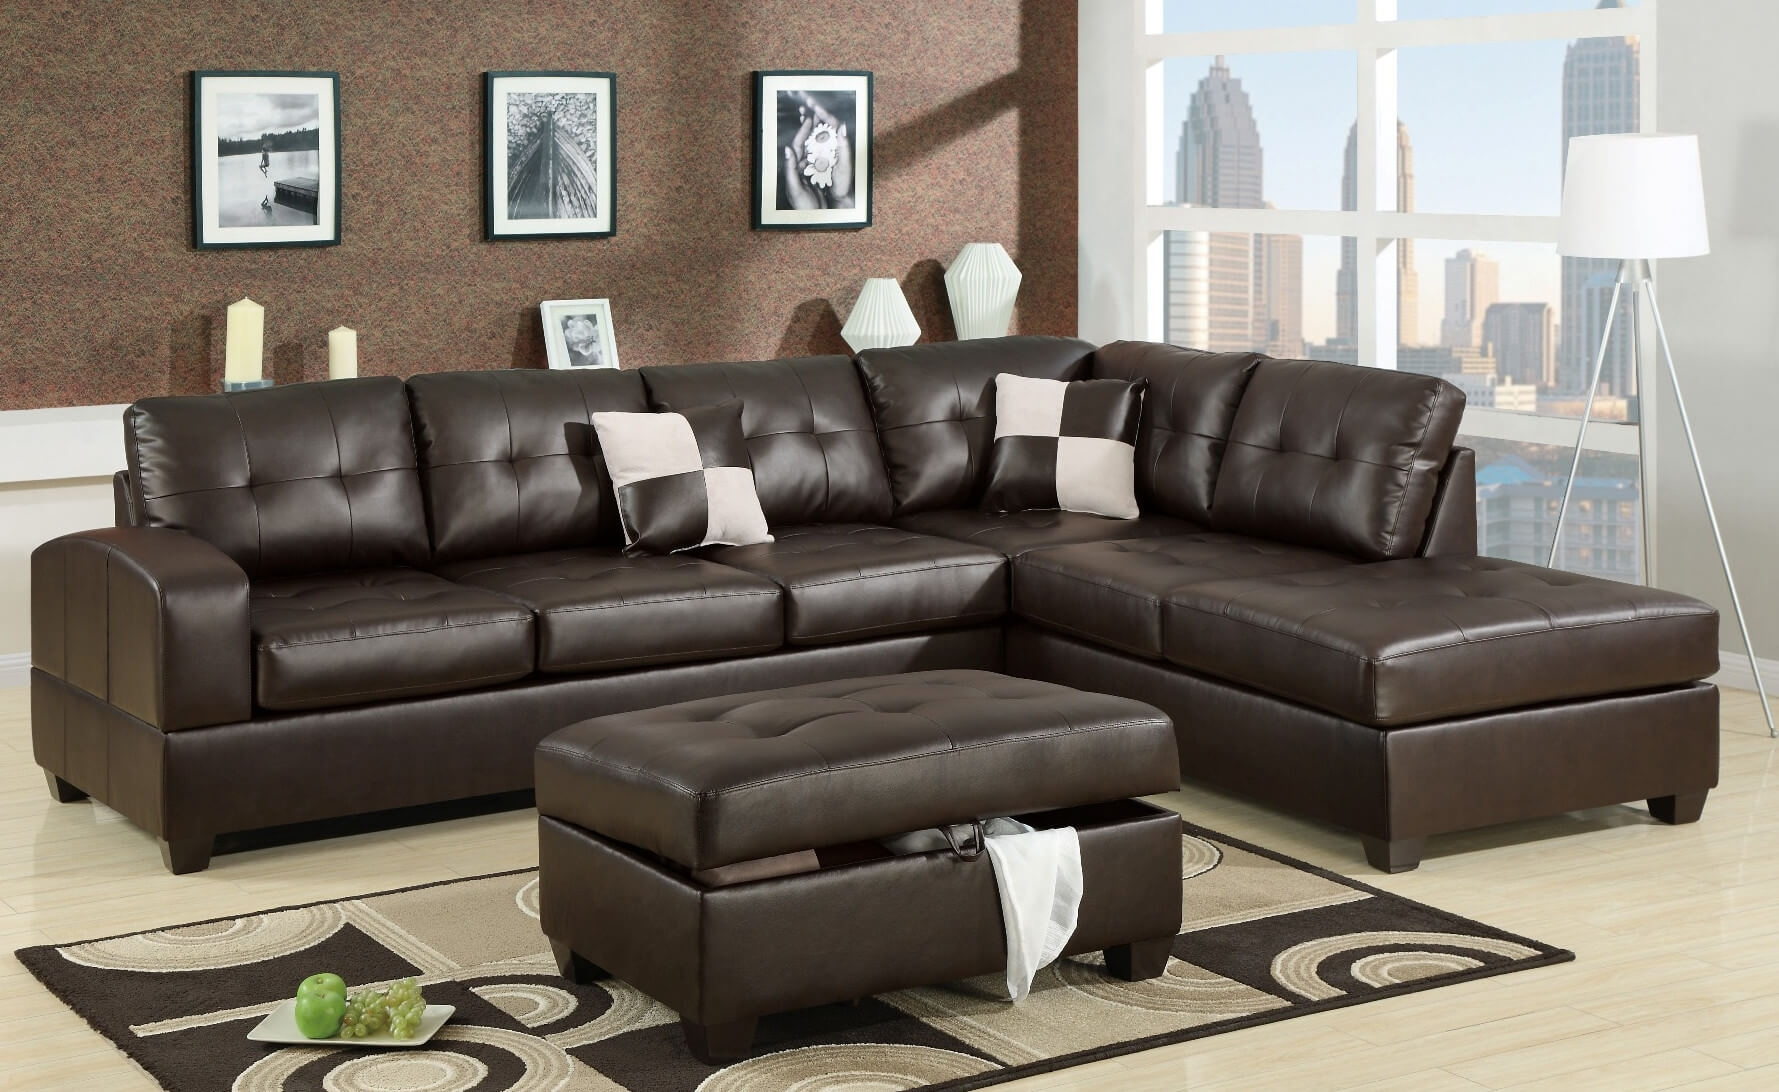 Cheap Sectional Sofas In Phoenix Az | Functionalities In Phoenix Arizona Sectional Sofas (View 8 of 10)